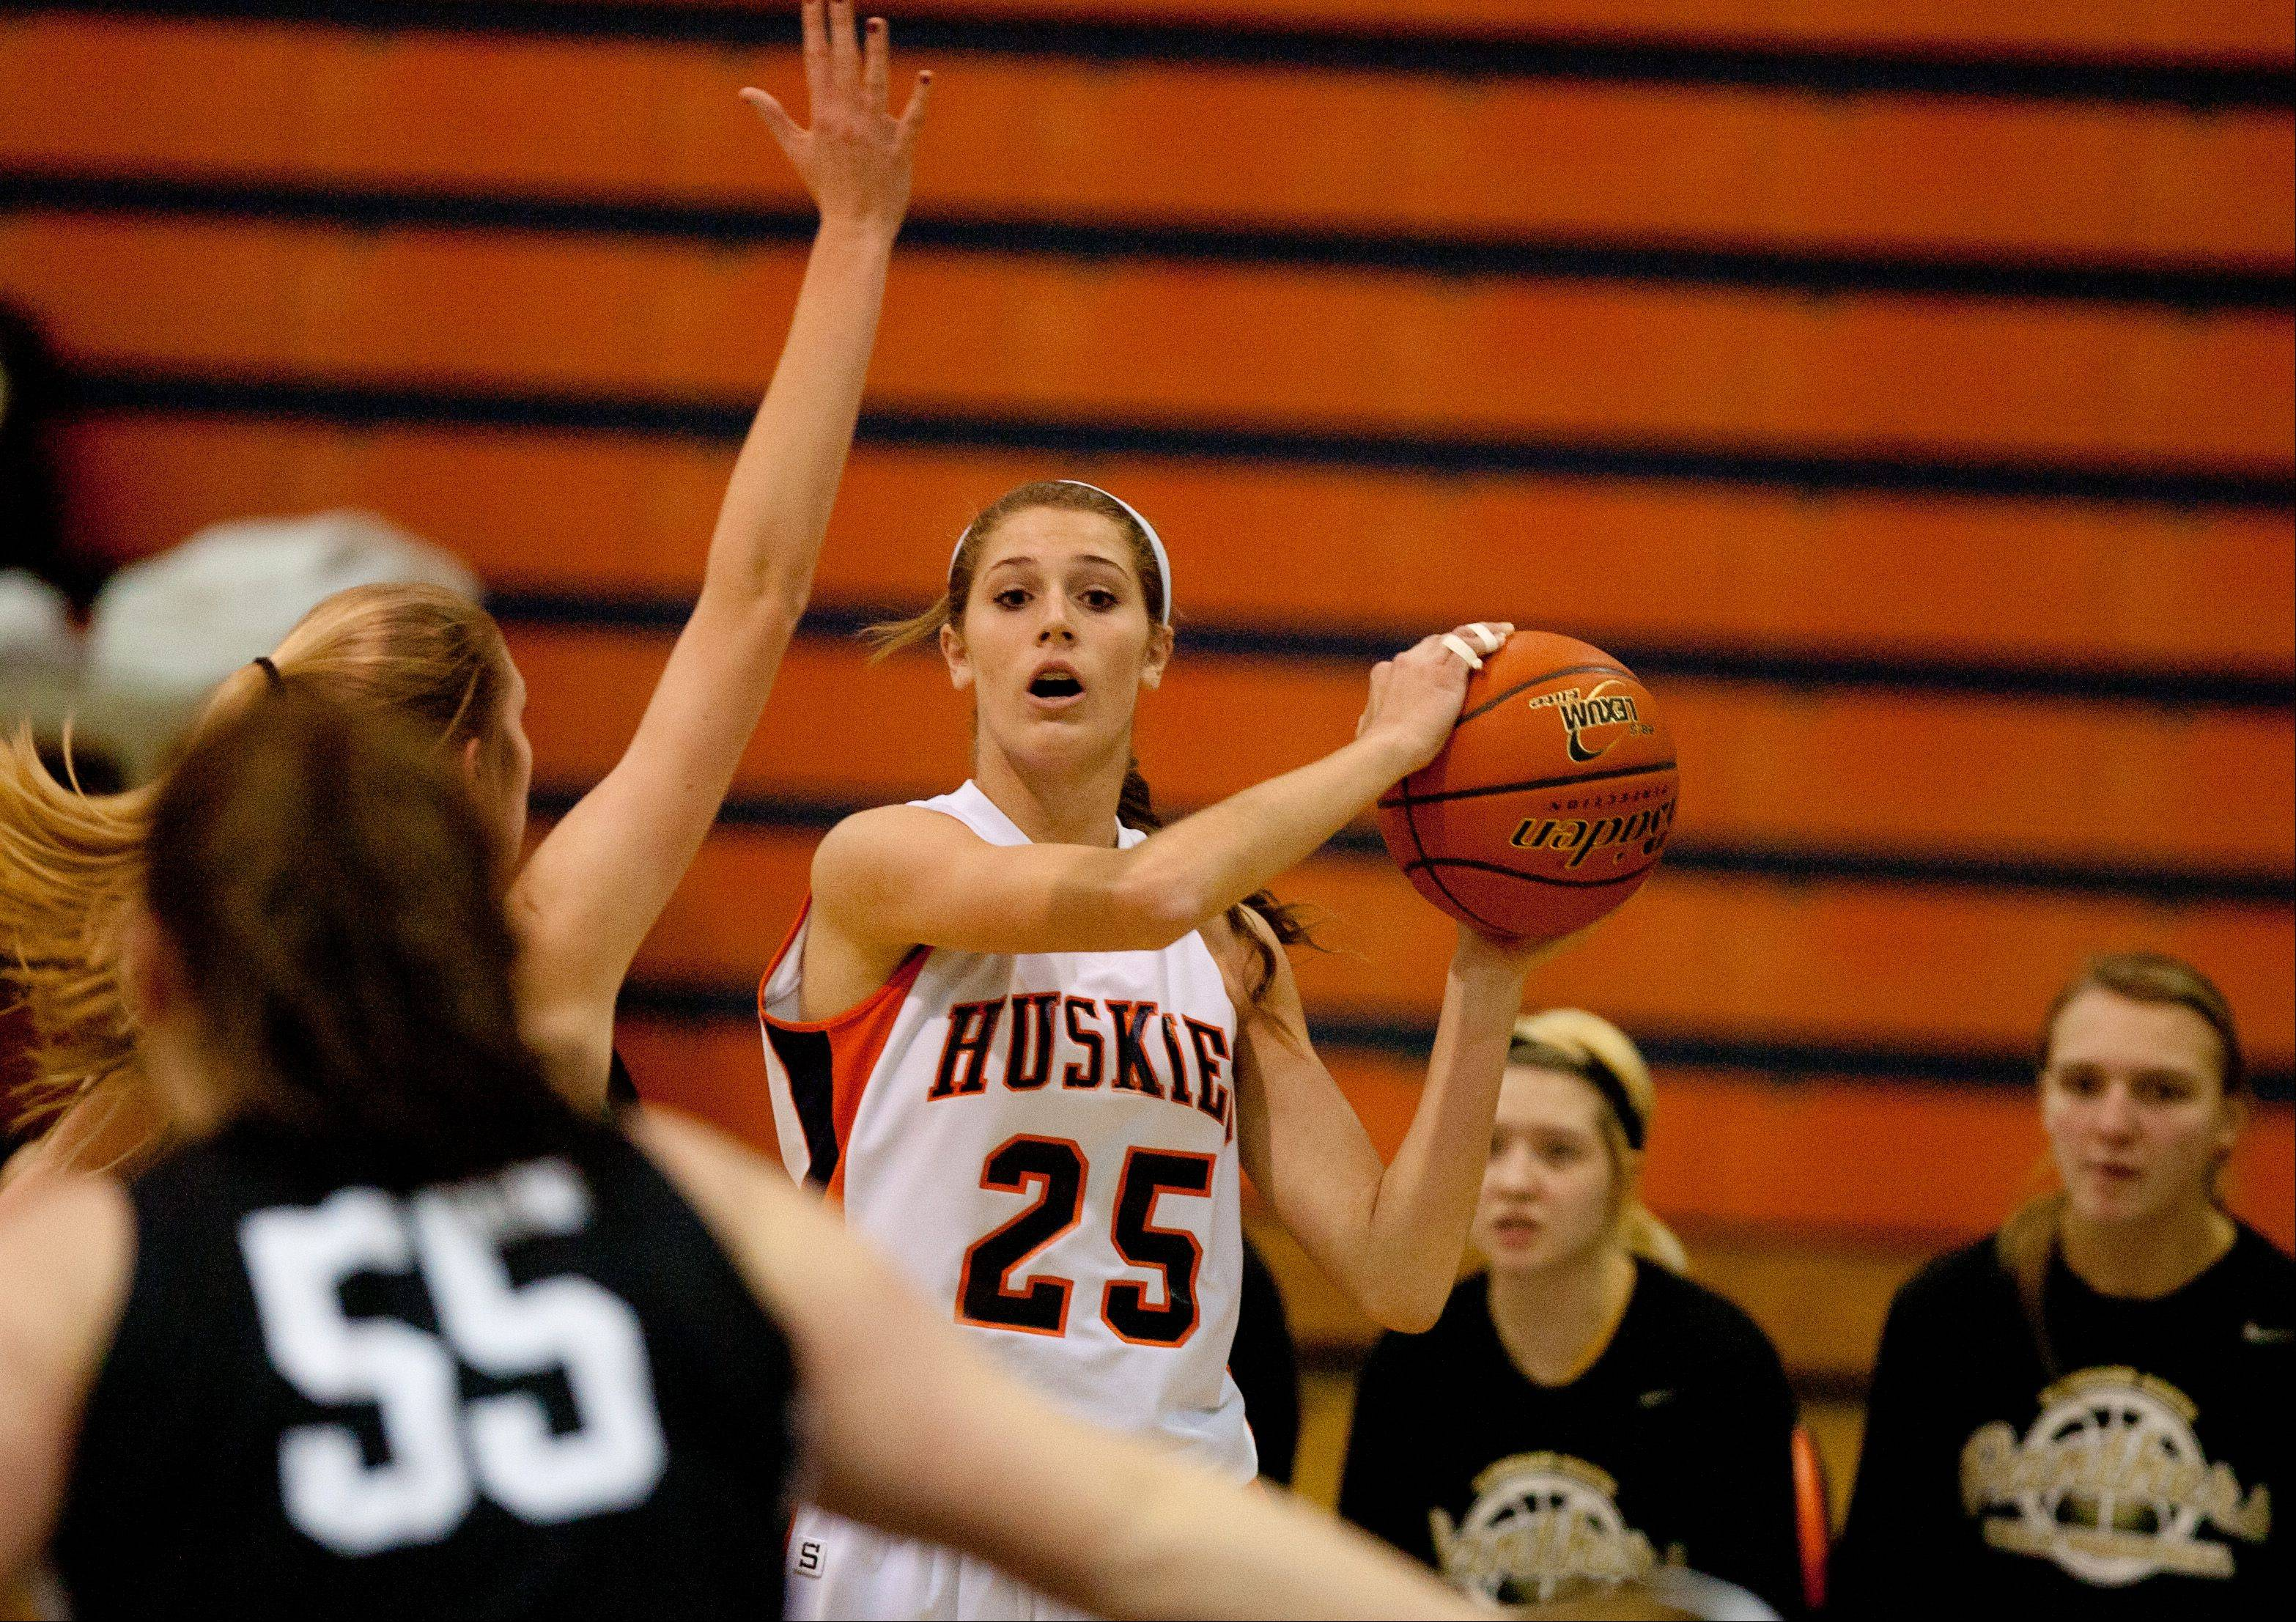 Naperville North�s Kayla Sharples looks to pass the ball.